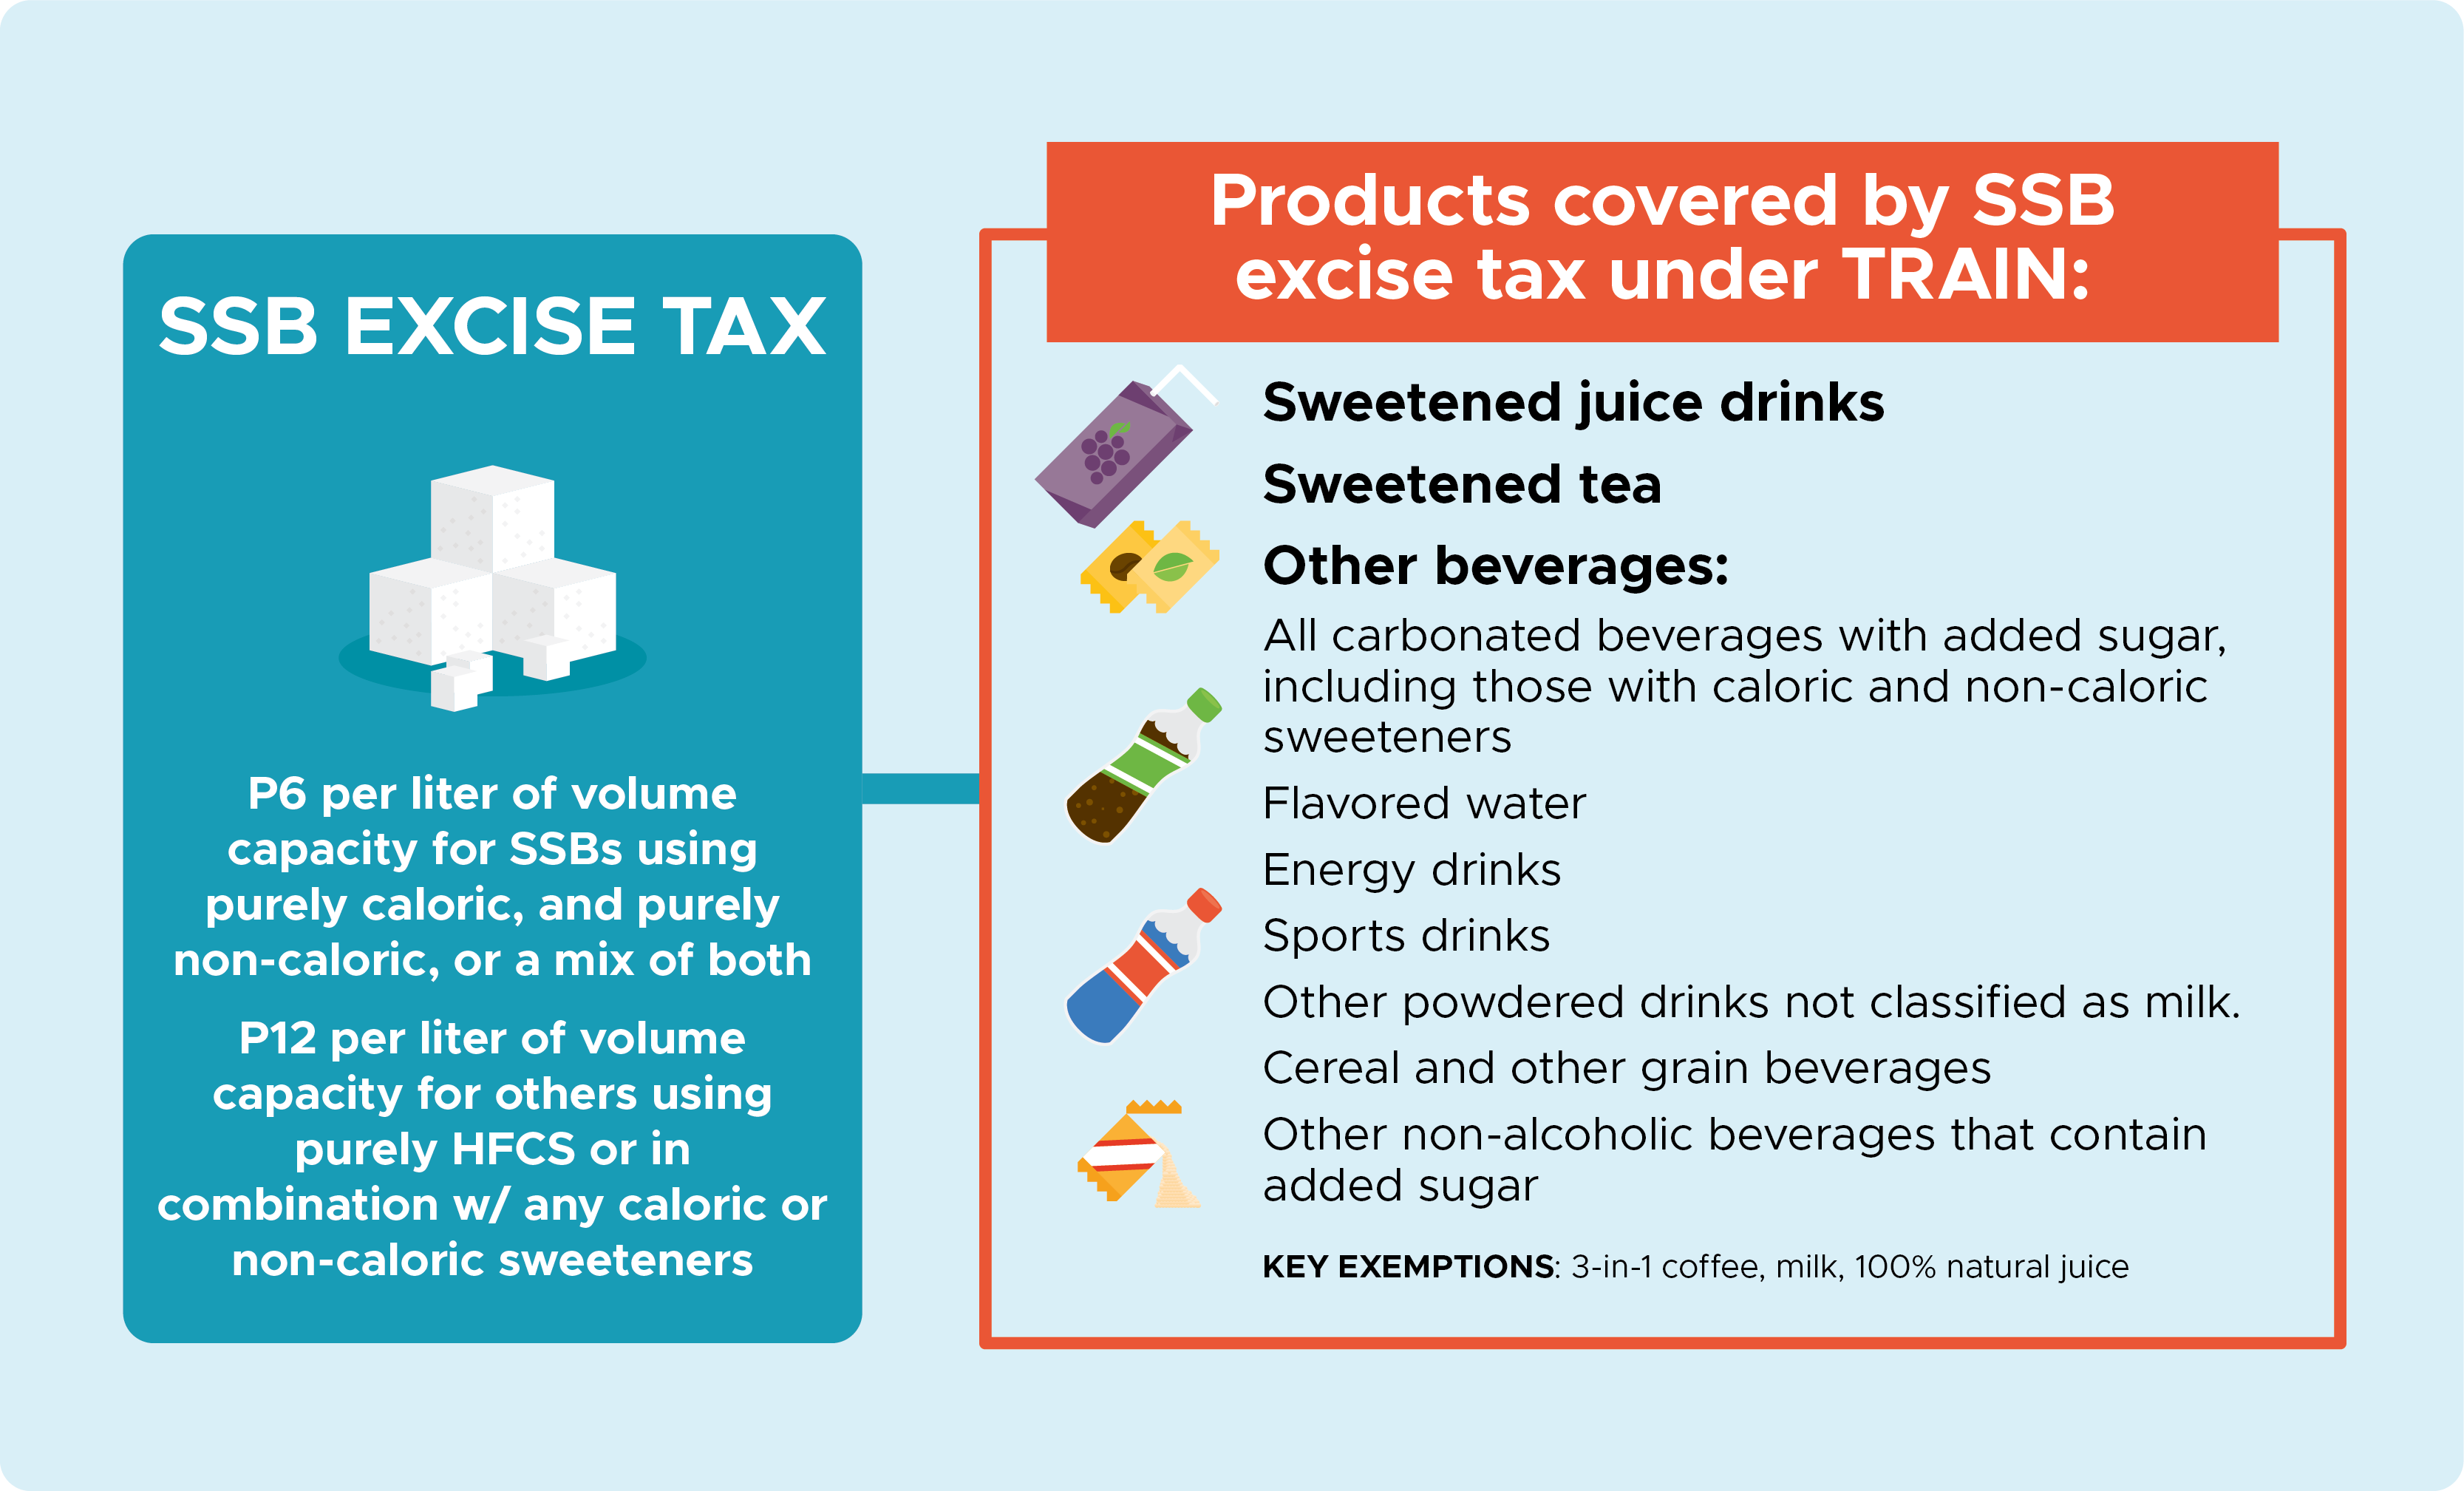 Package One Excise Tax On Sweetened Beverages